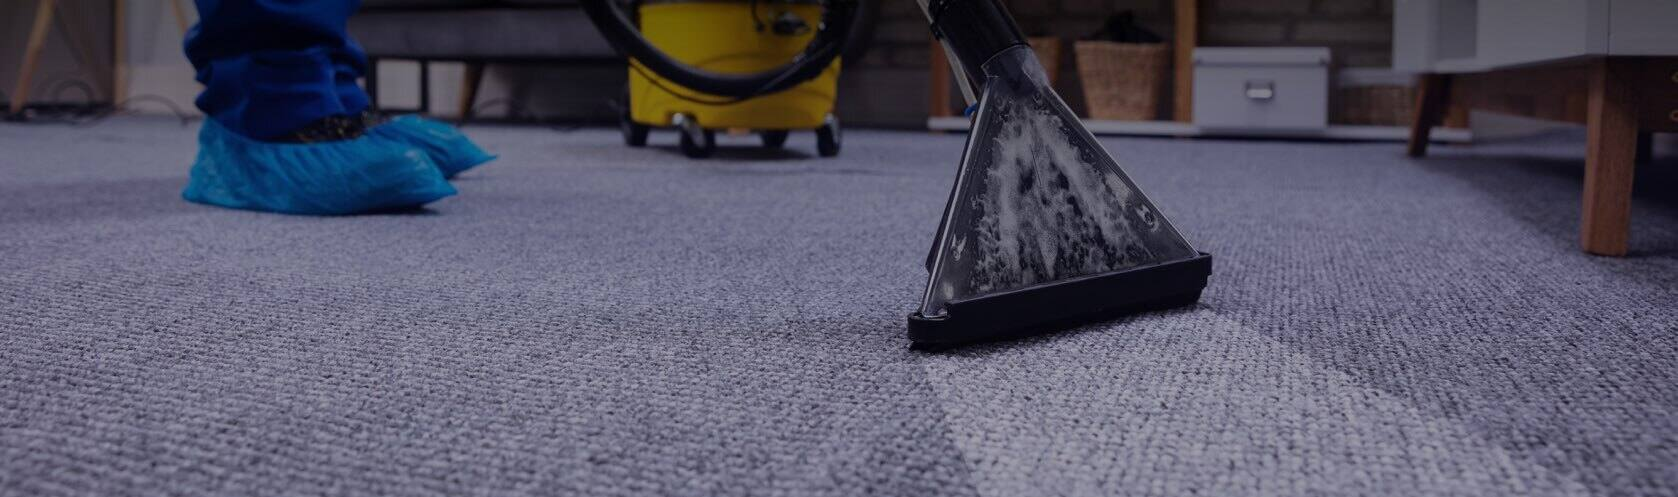 Top-rated carpet cleaners work.